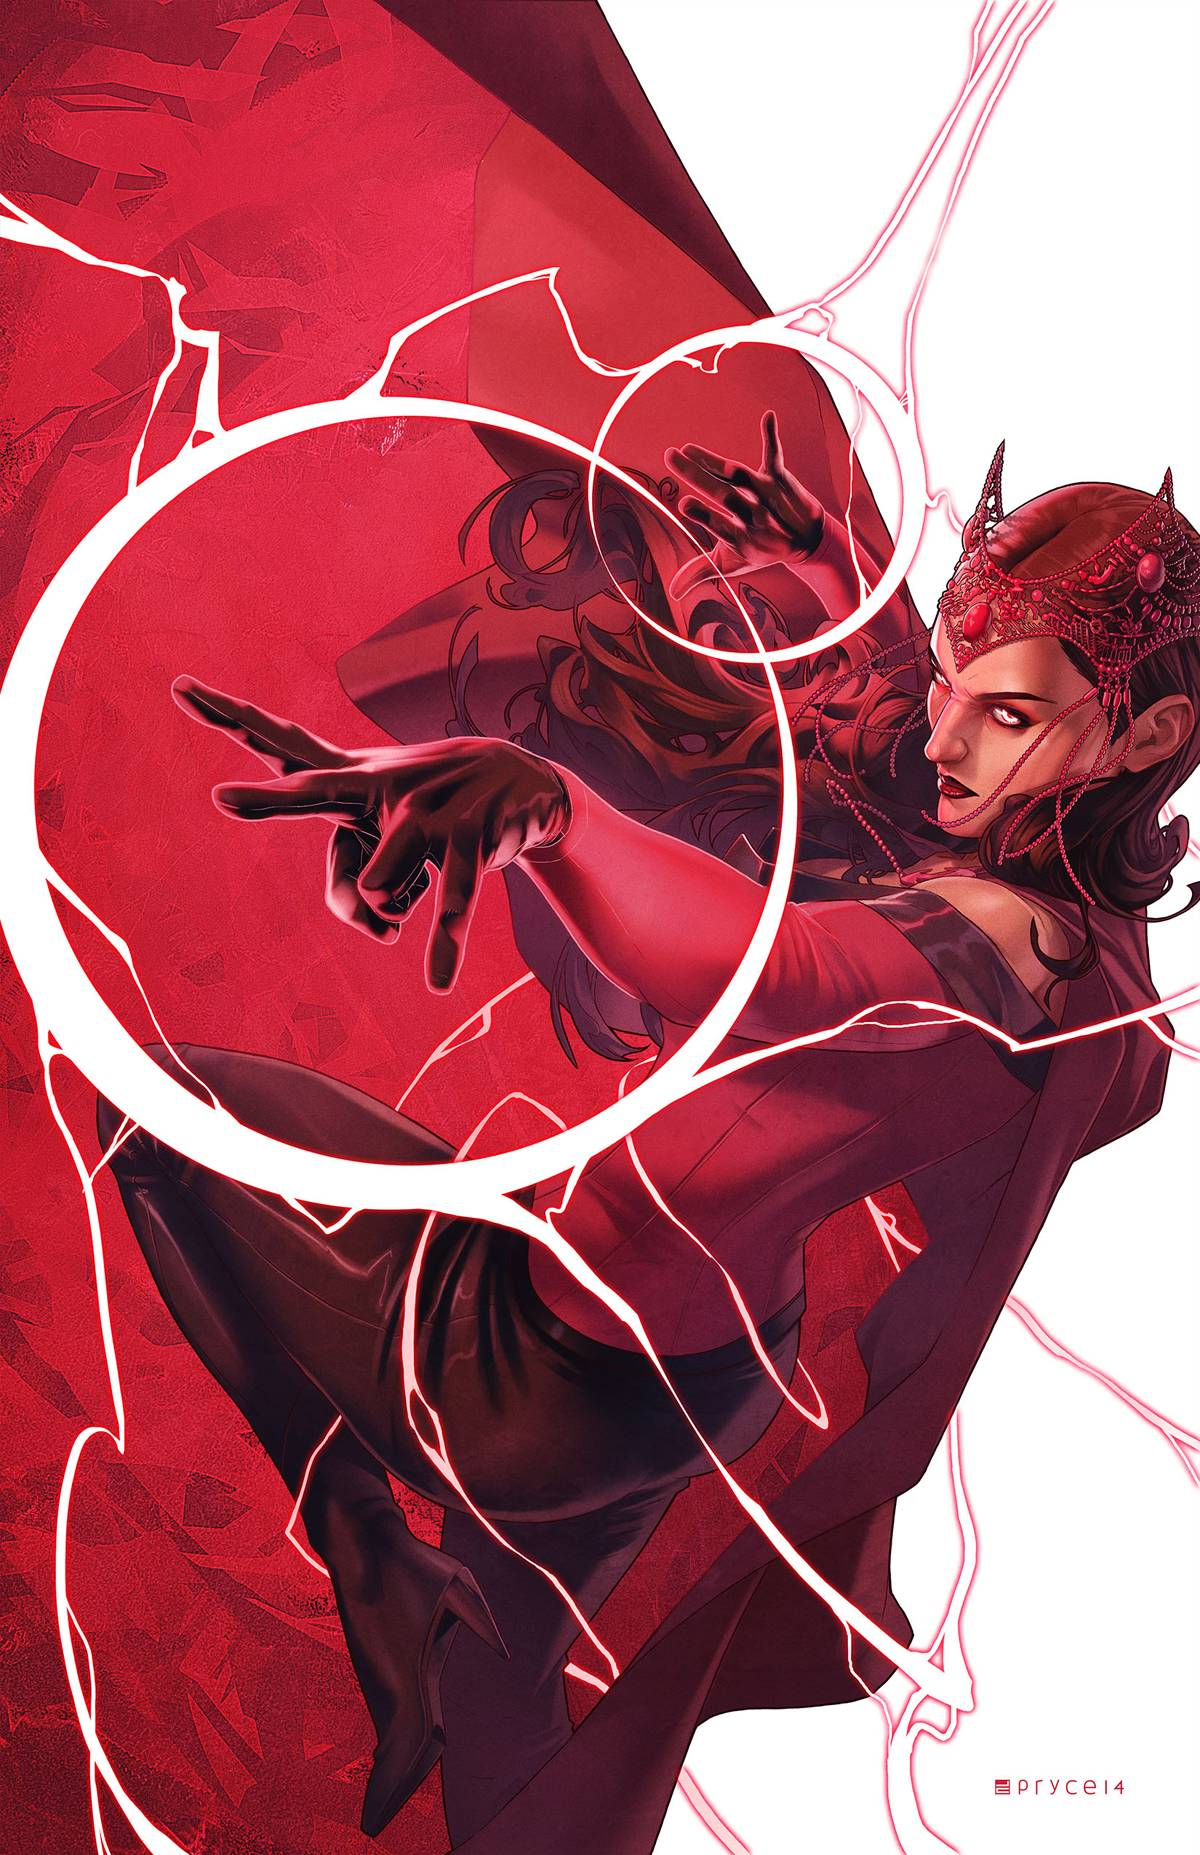 Scarlet Witch (Marvel)